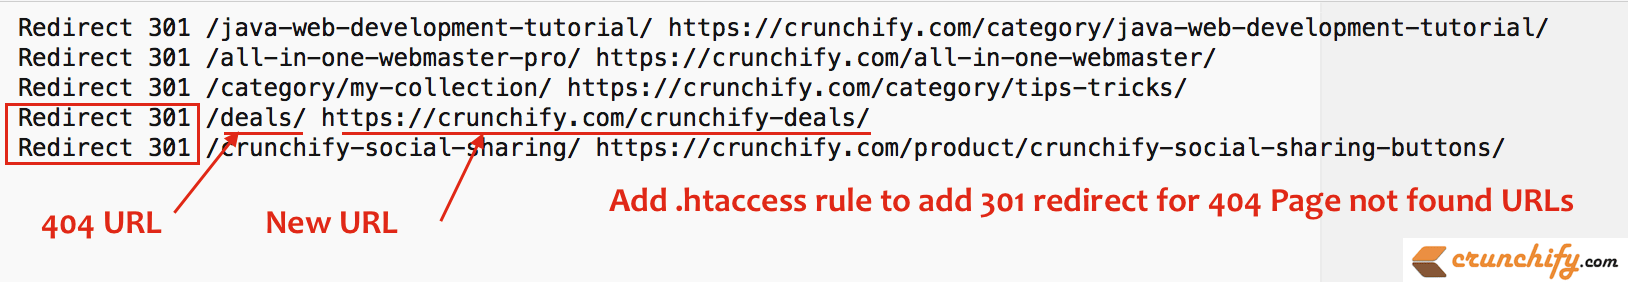 Add htaccess rule to add 301 redirect for 404 Page not found URLs - Crunchify